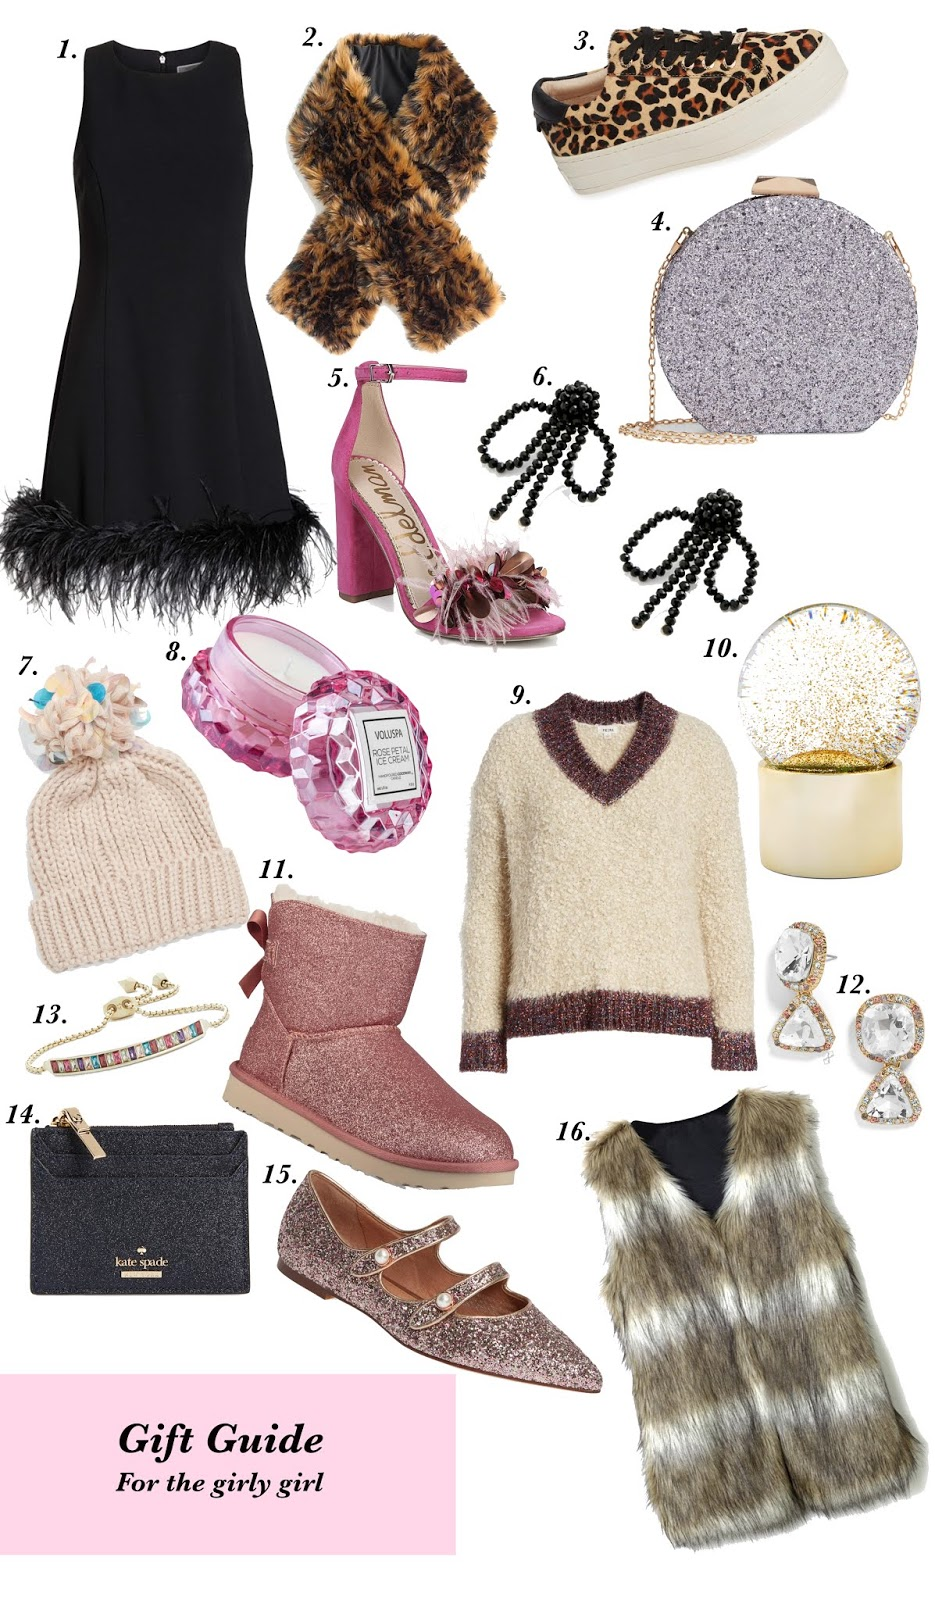 Gift Guide for the Girly Girl - Something Delightful Blog